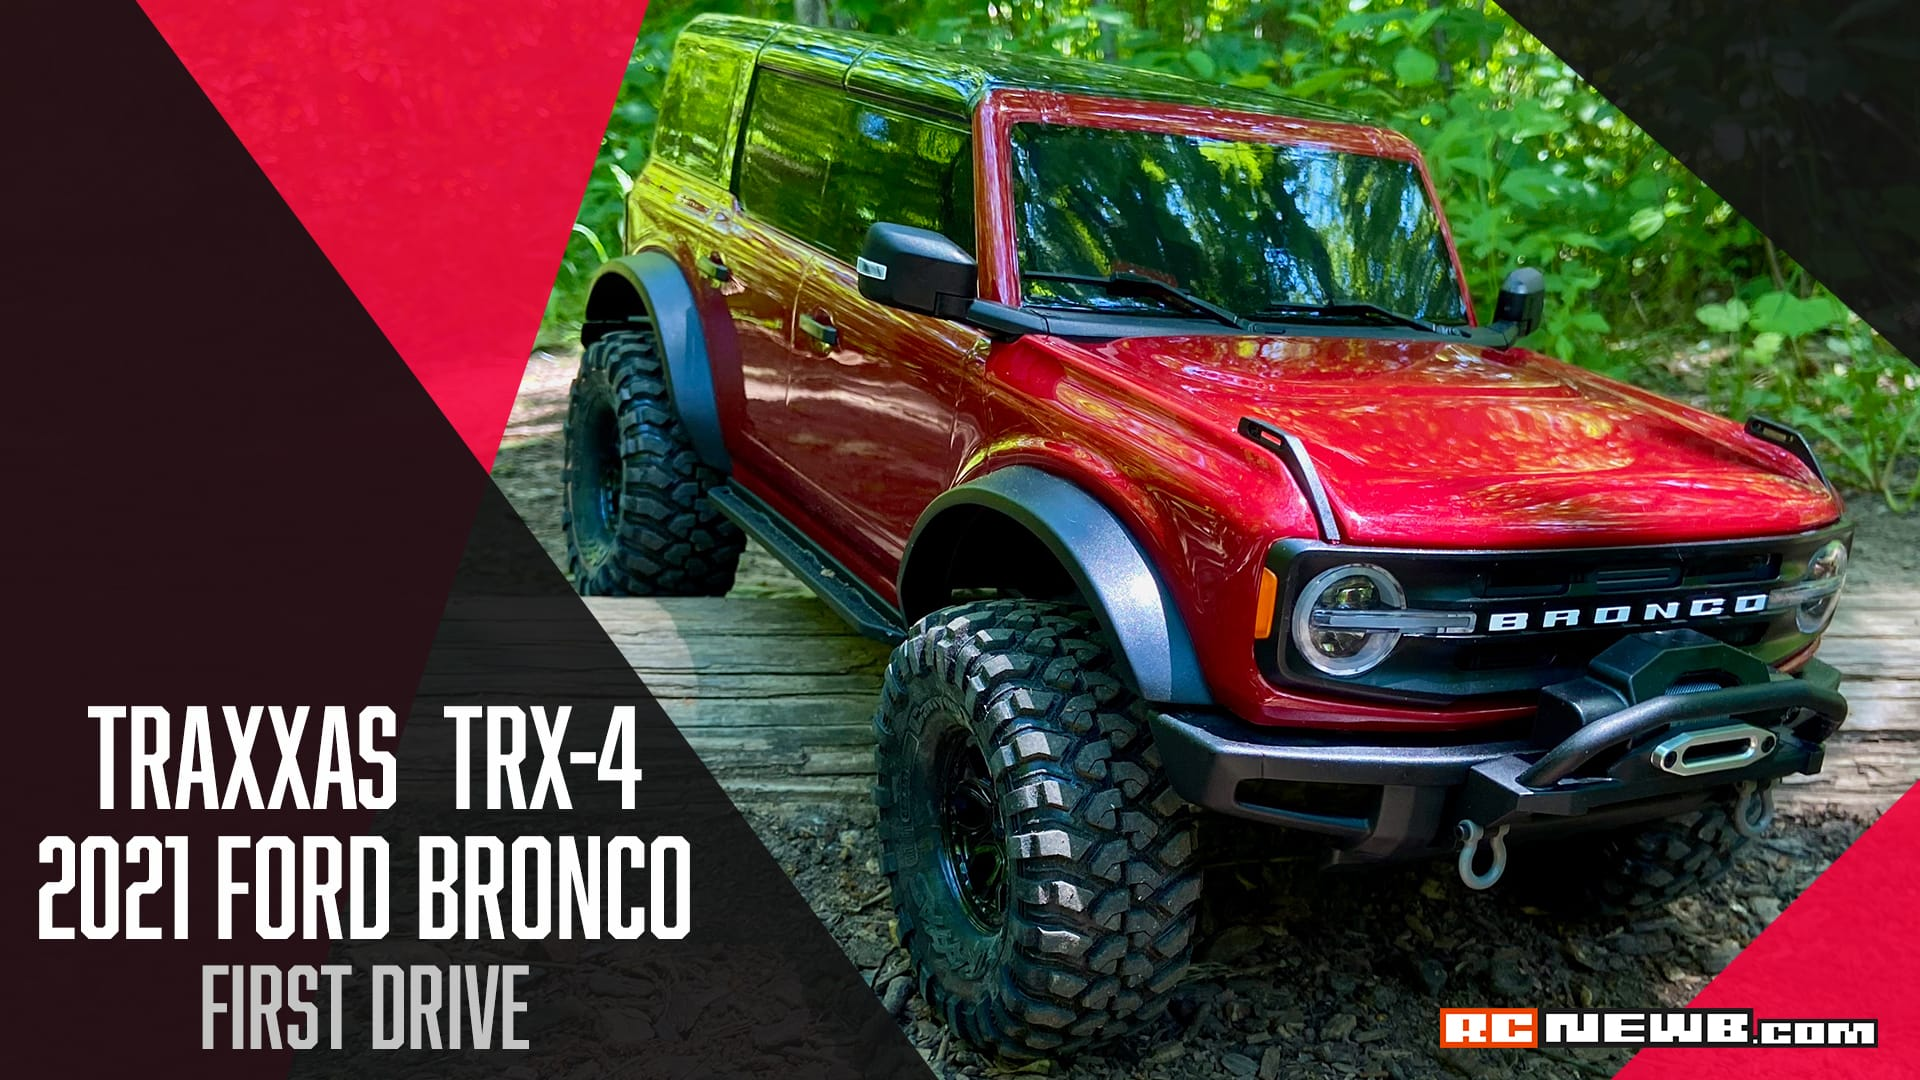 Out on the Trail with the Traxxas TRX-4 2021 Ford Bronco [Video]